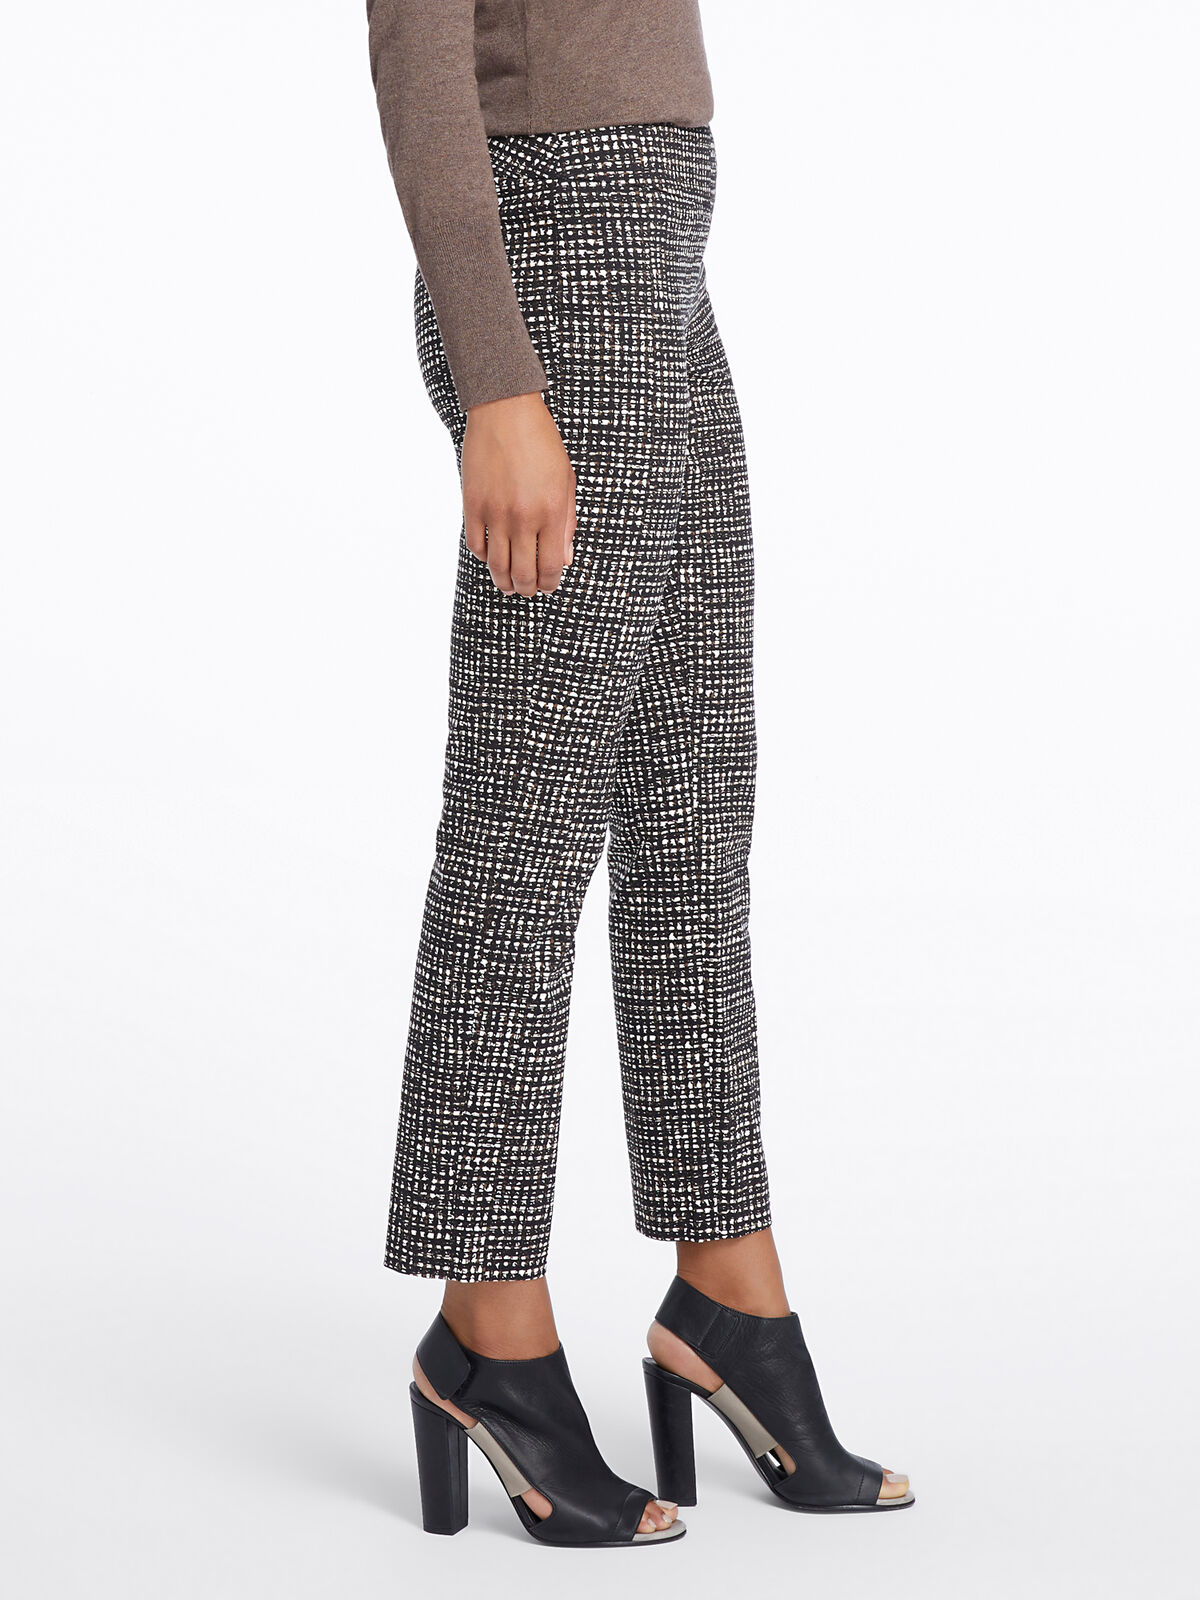 Abstract Tweed Wonderstretch Pant